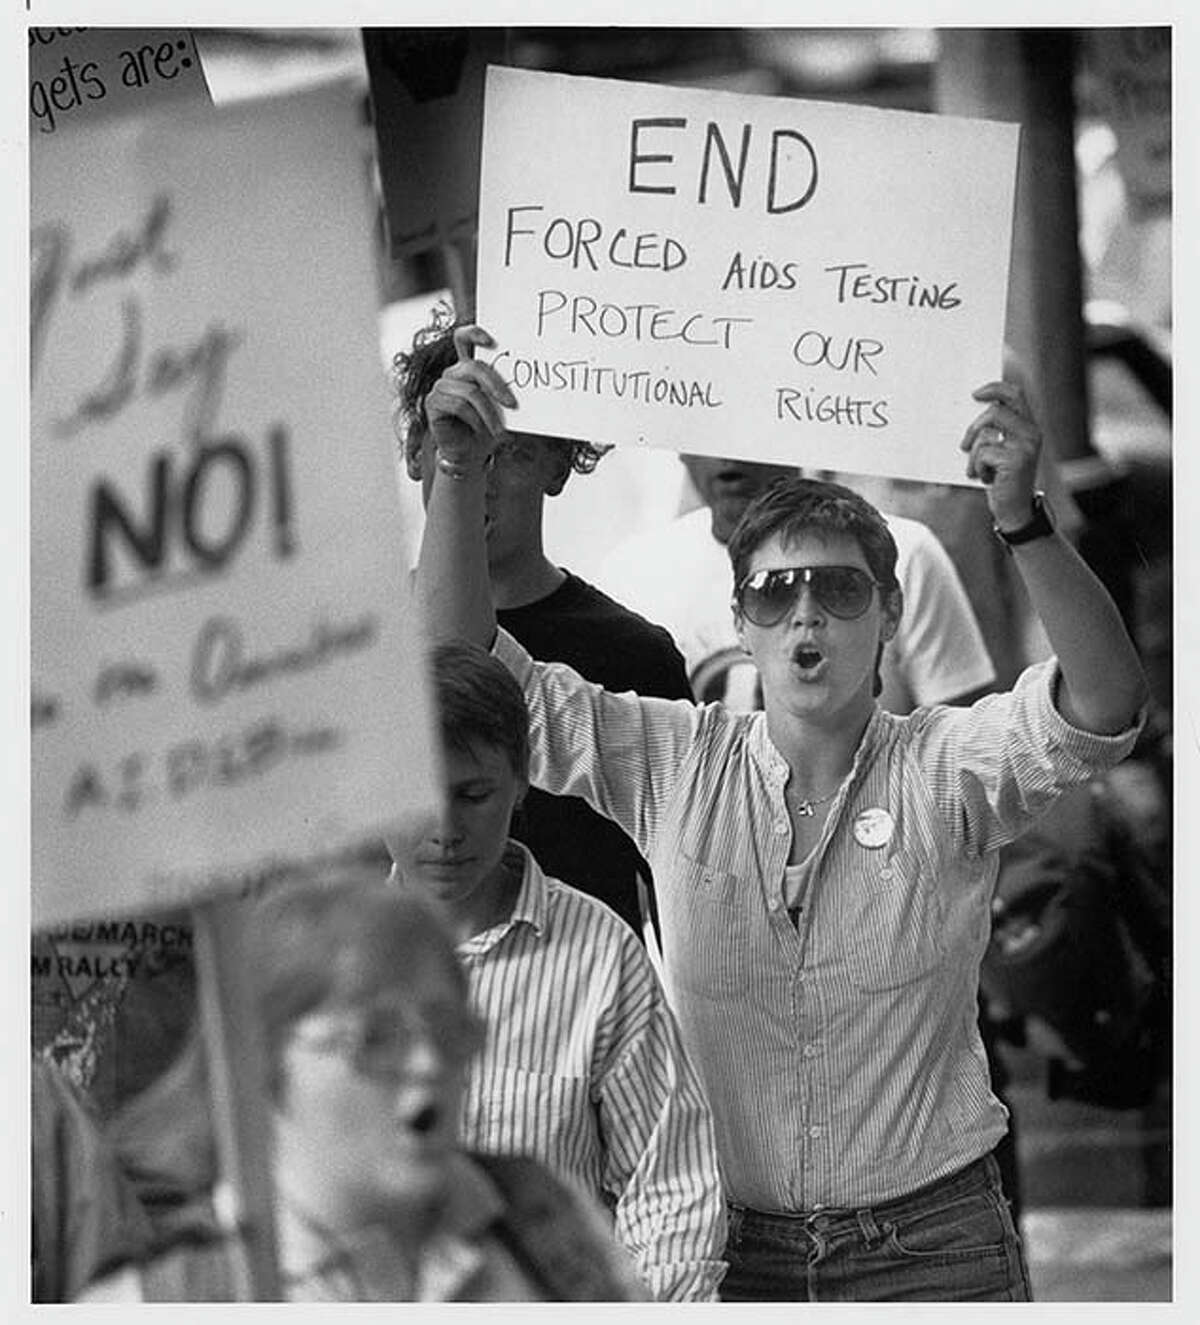 In June 1988, about two dozen people protested forced AIDS testing outside the King County Courthouse. This image shows members of the Stonewall Committee for Lesbian/Gay Rights at that event, picketing in protest of a court order requiring testing of Steven Farmer, a convicted sex offender, against his will.